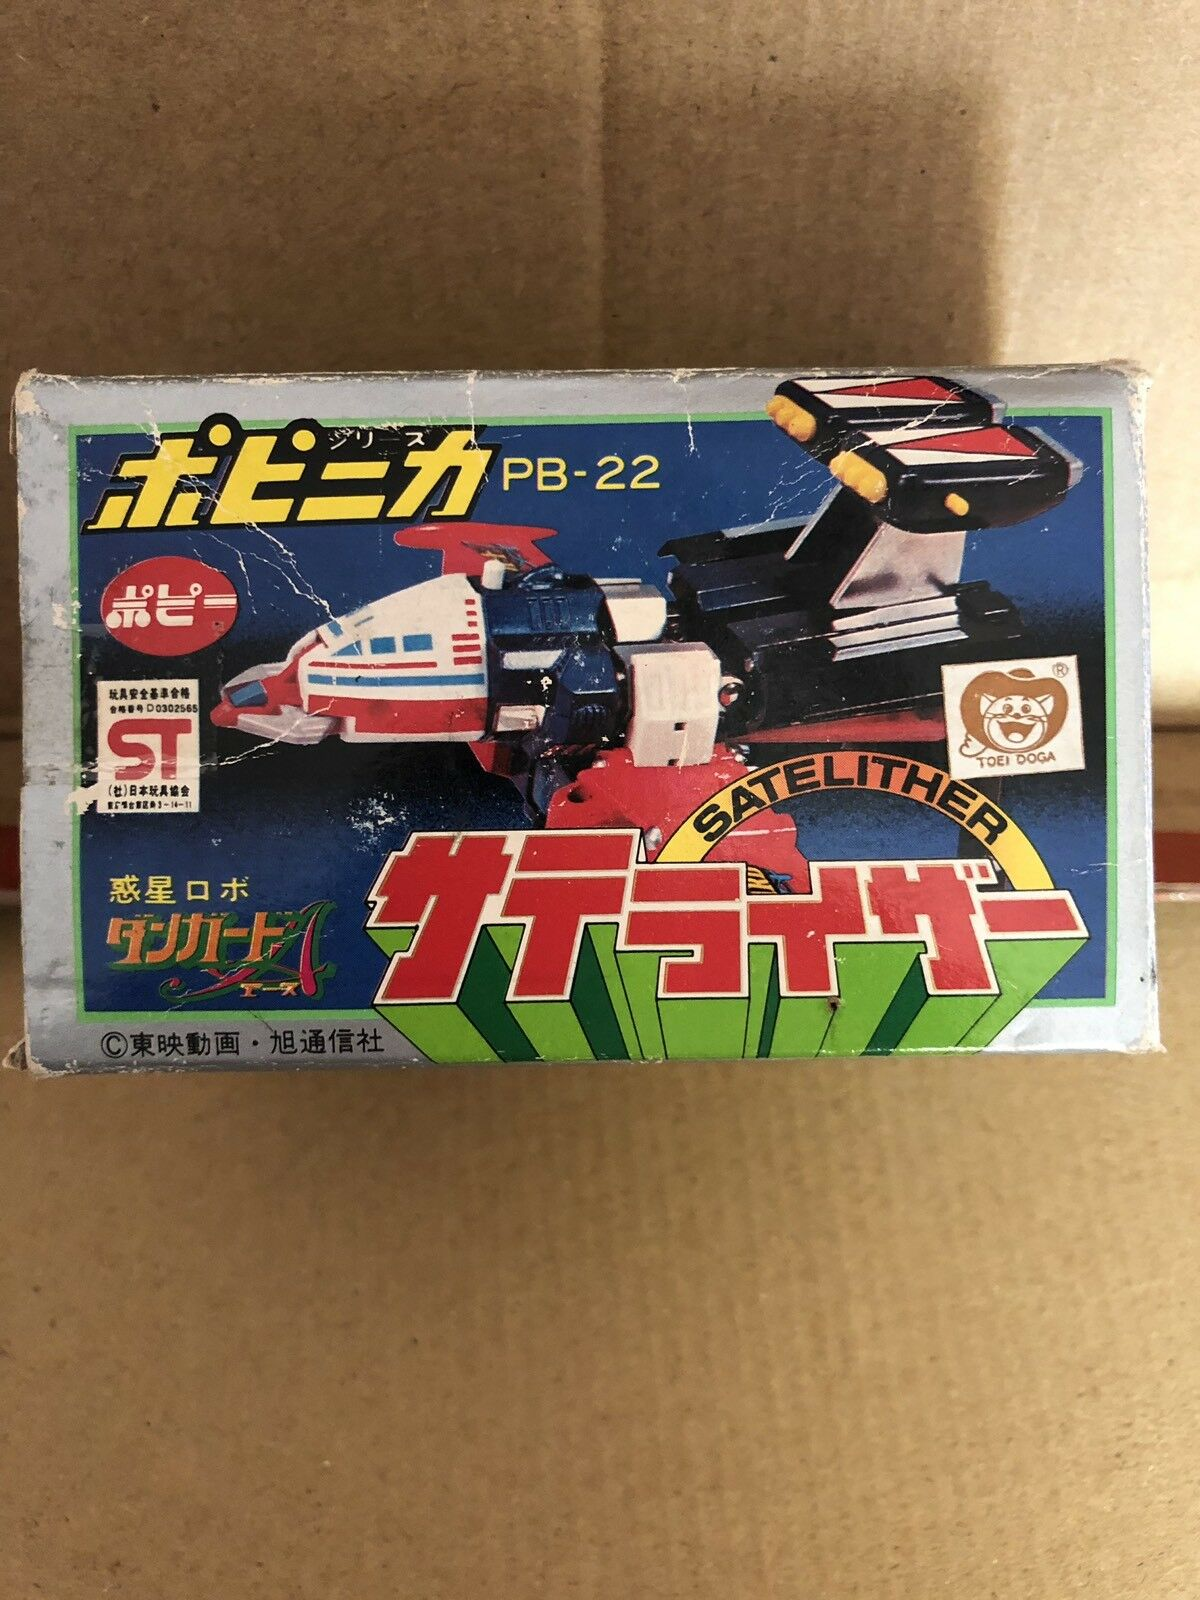 POPY SATELITHER  DANGUARD PB-22 MINT IN BOX,NEVER PLAYED